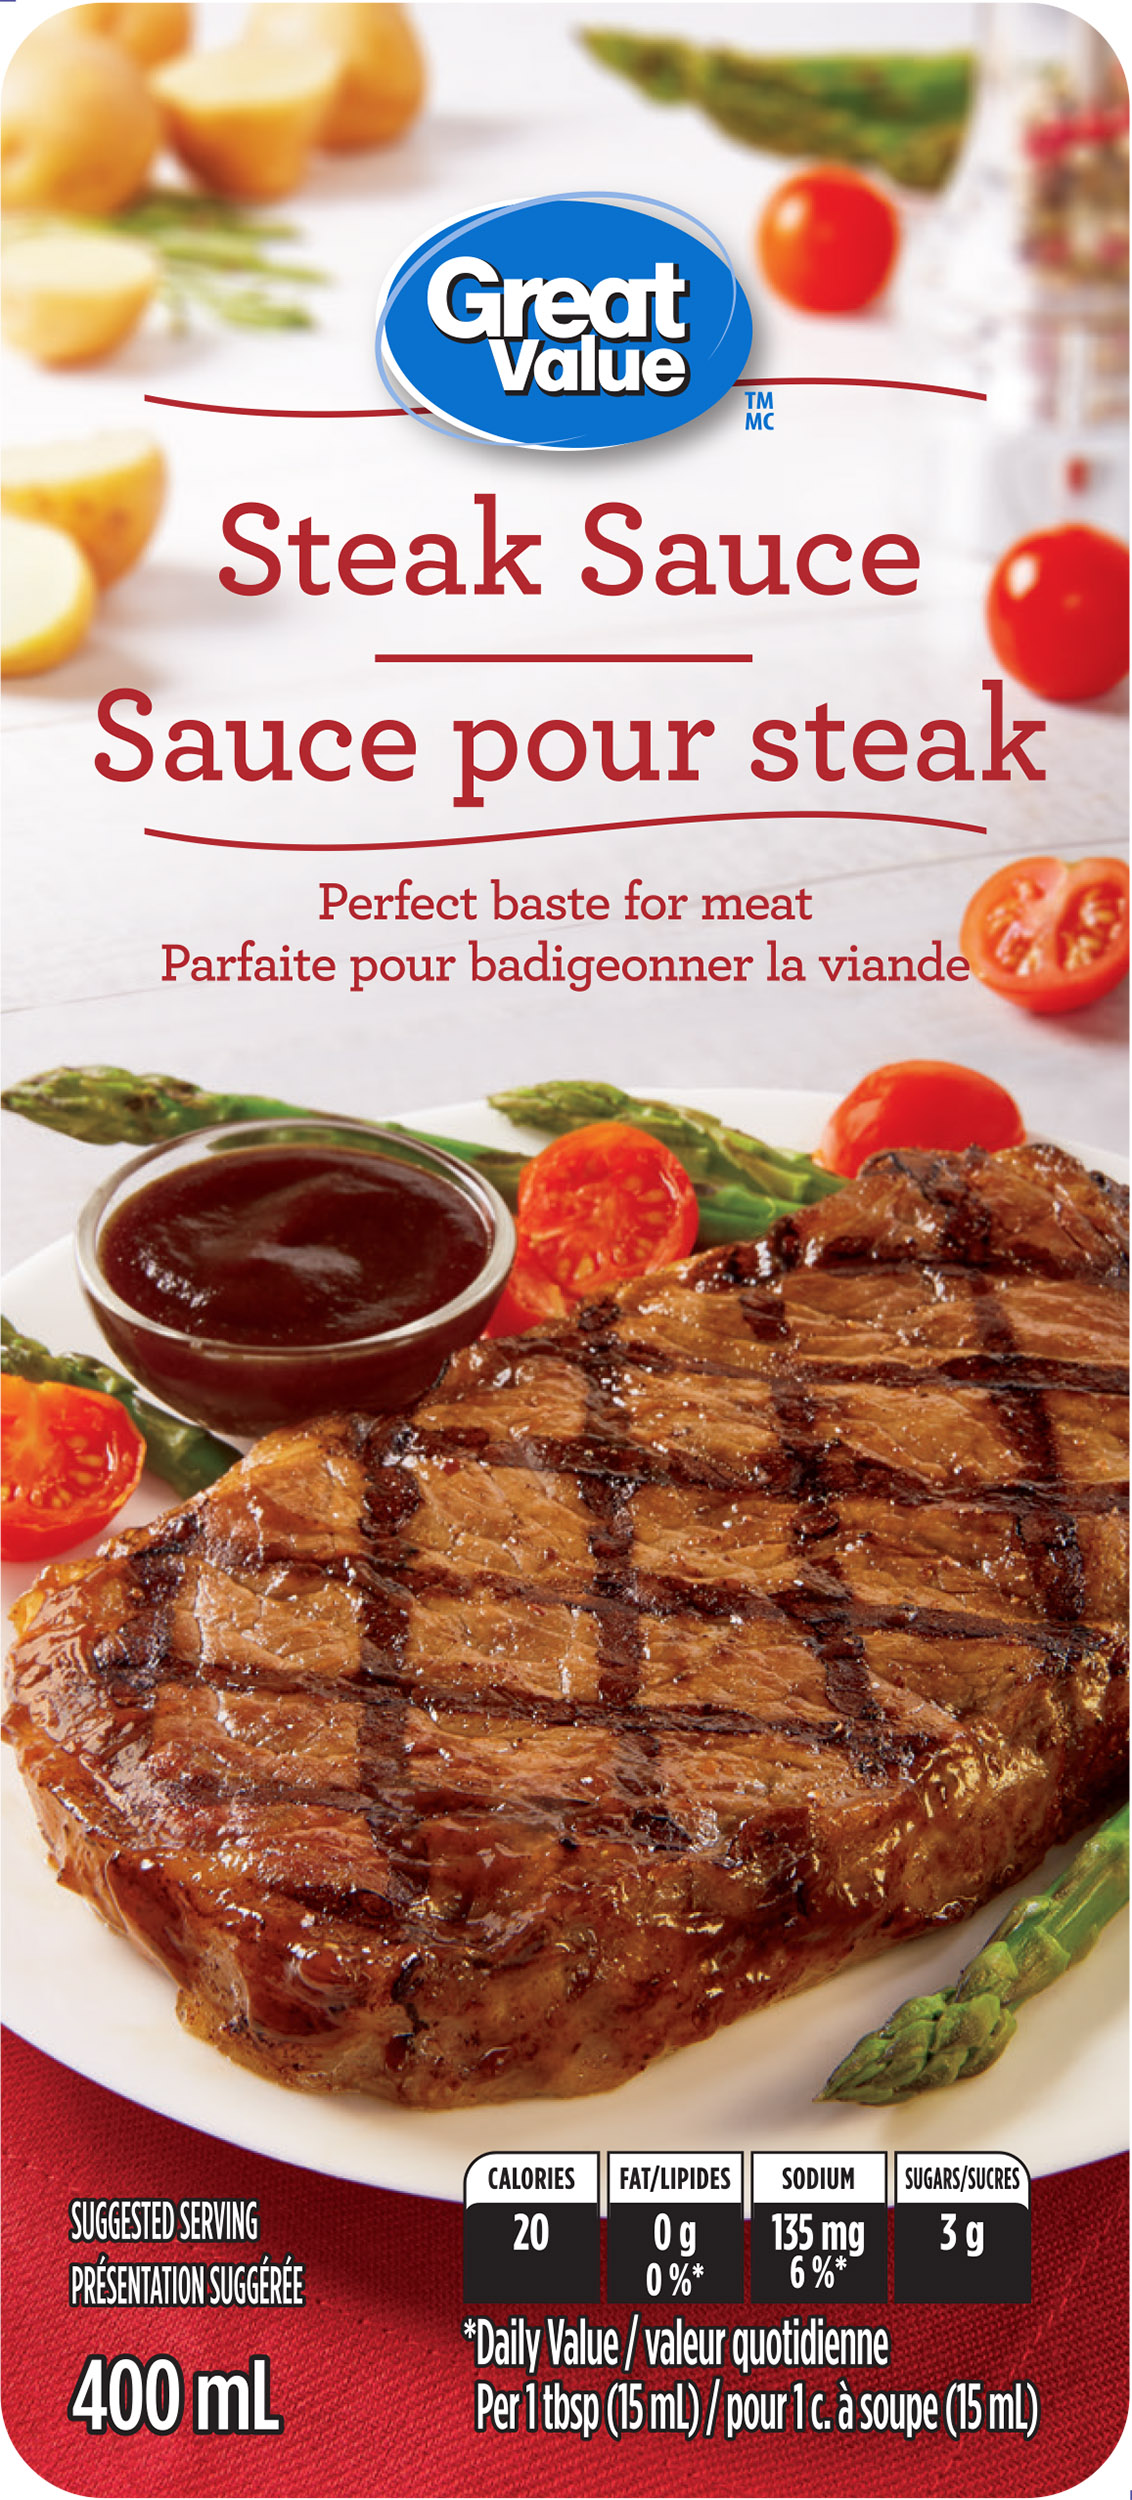 SteakSauce400mL_caCC_lbl_Final_LR-2